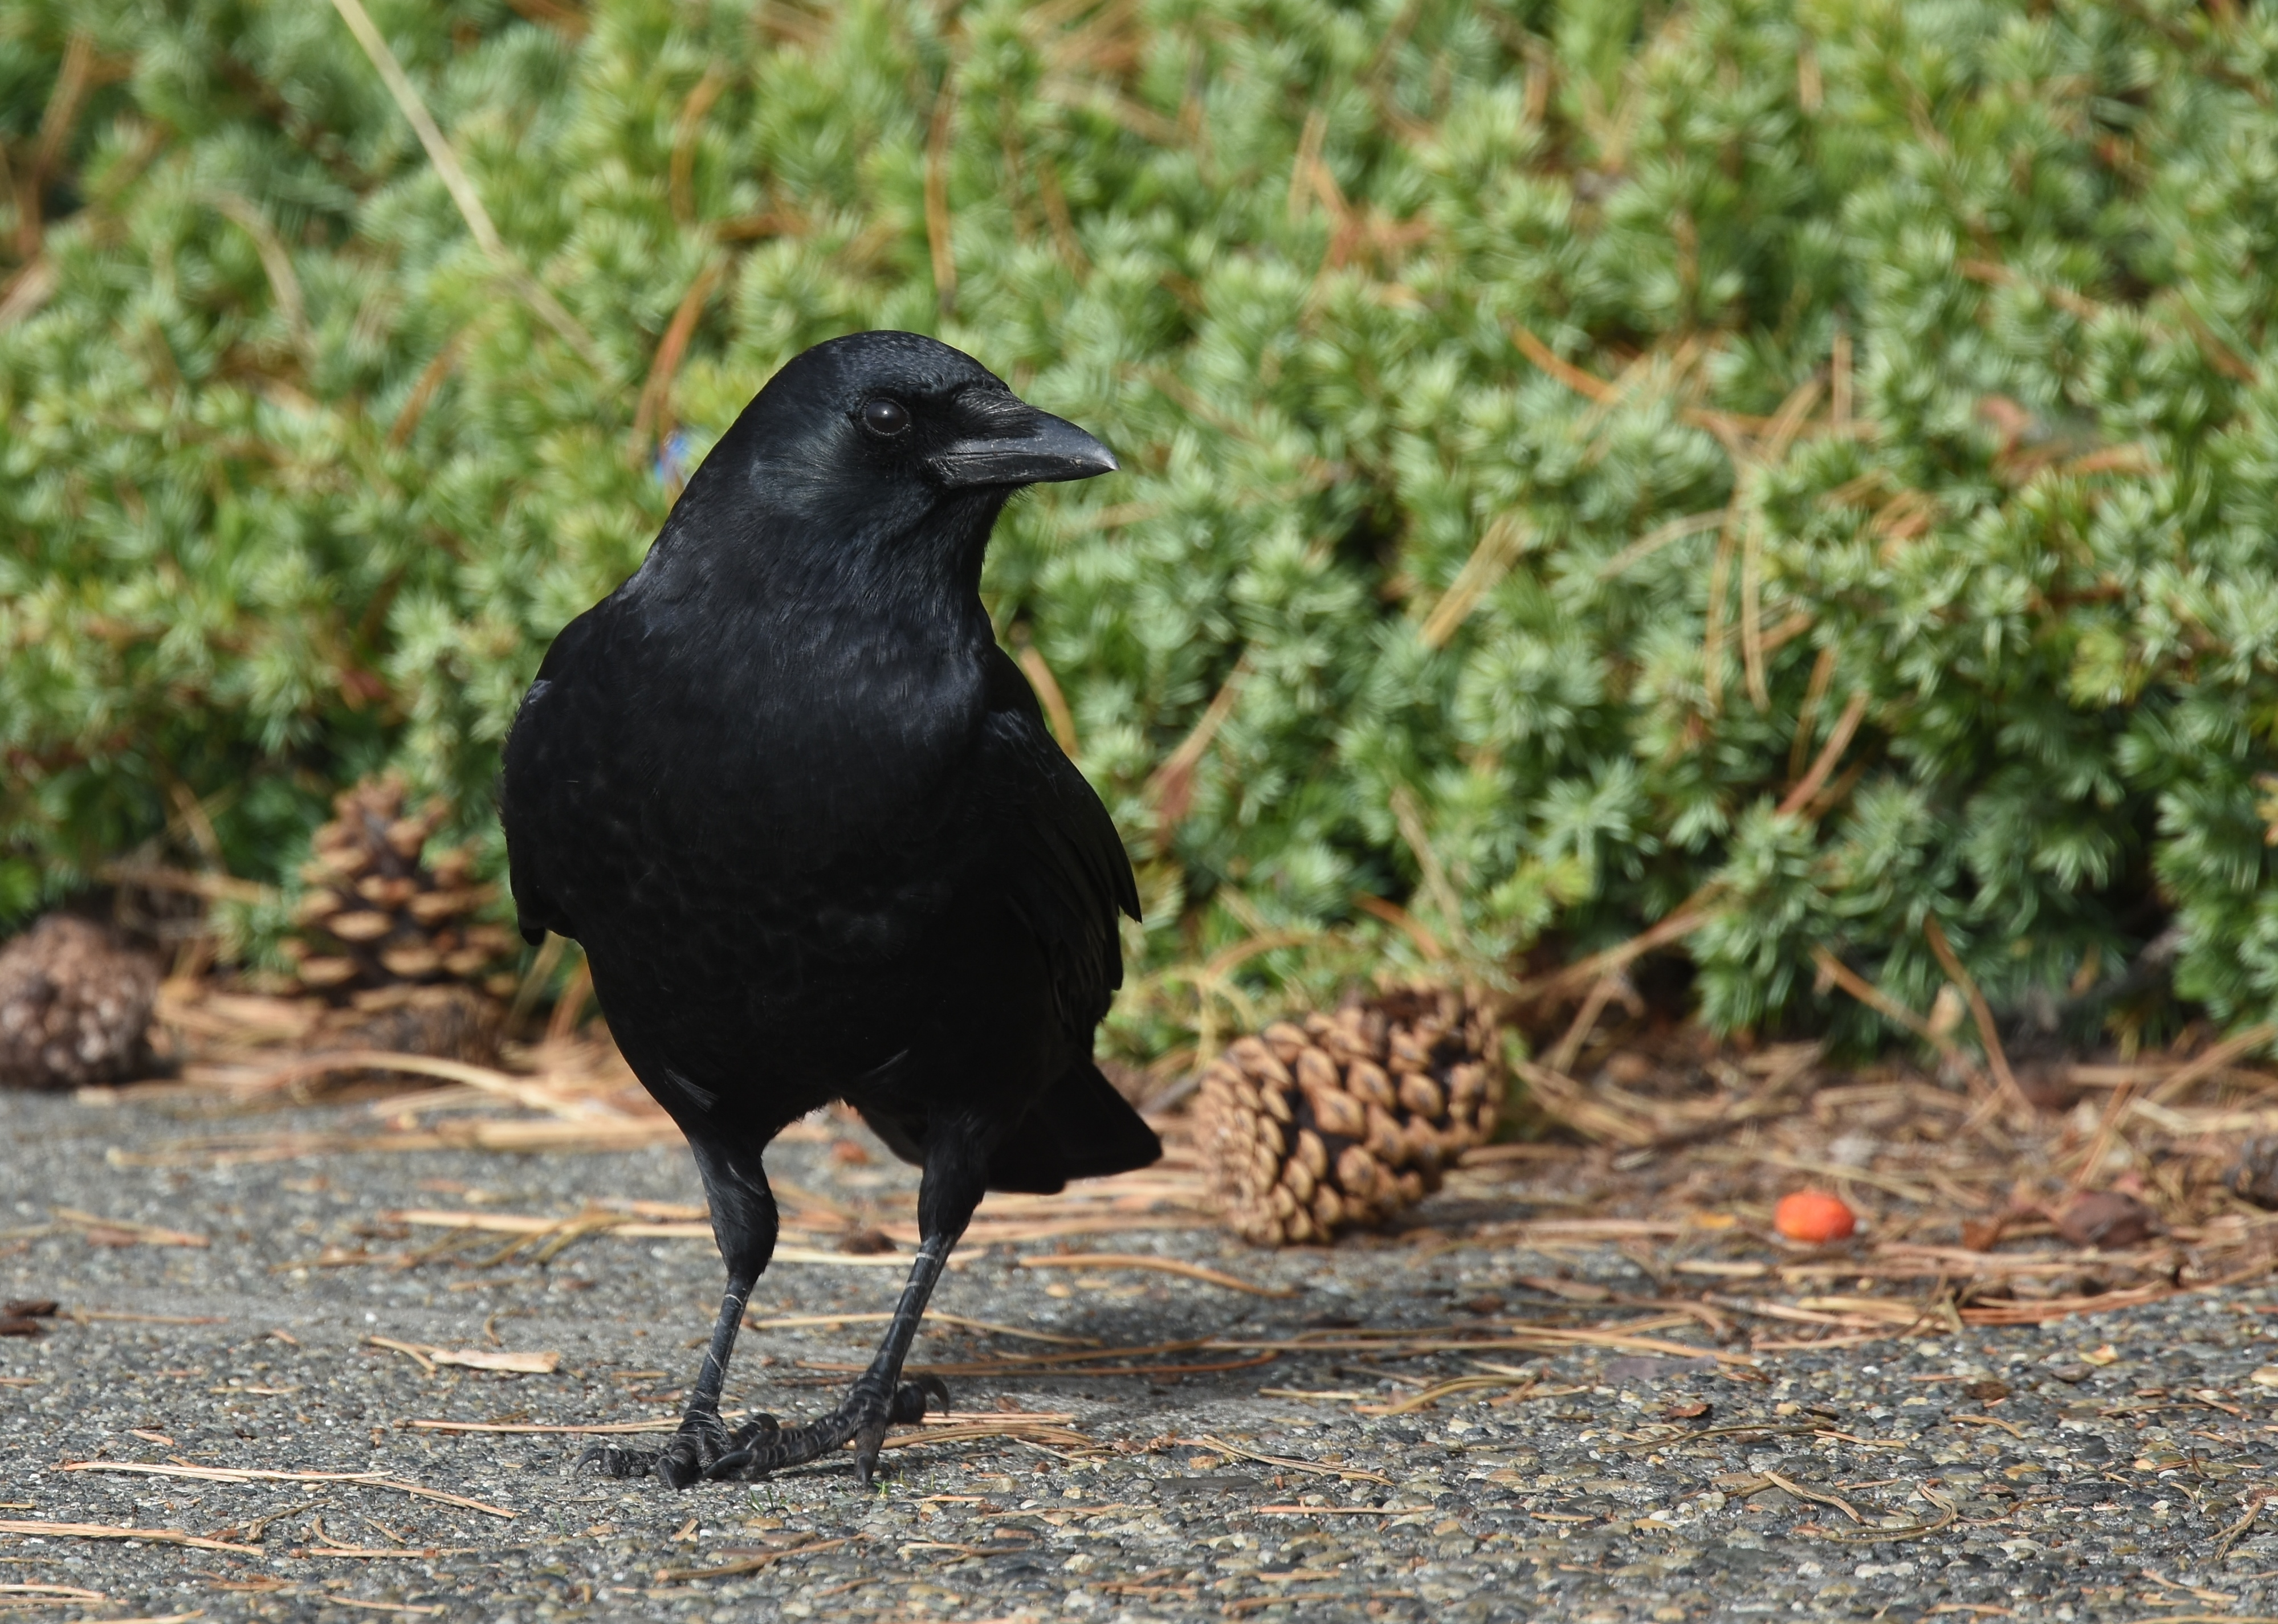 American crow on pavement in front of greenery